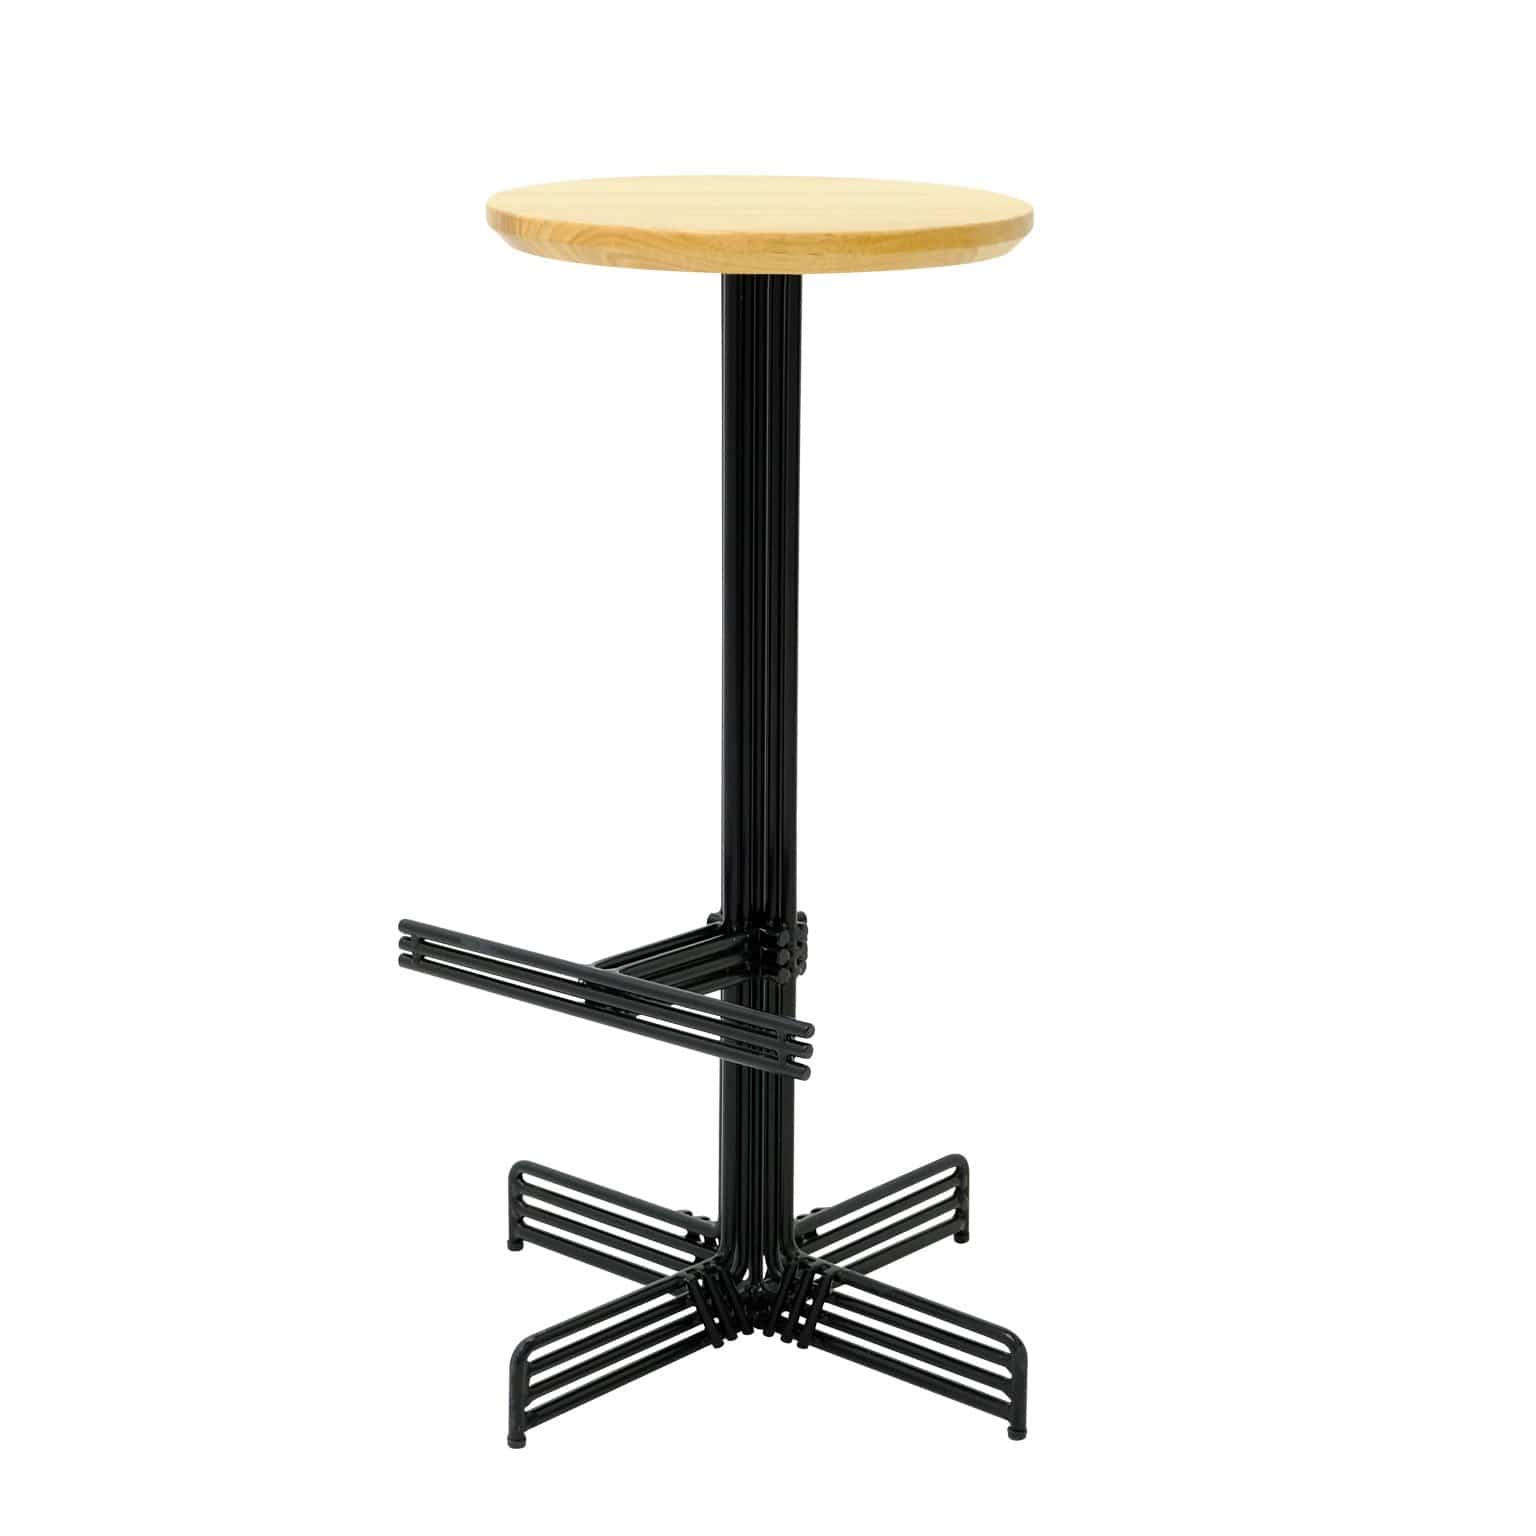 Bend Goods Furniture Black Stick Bar Stool